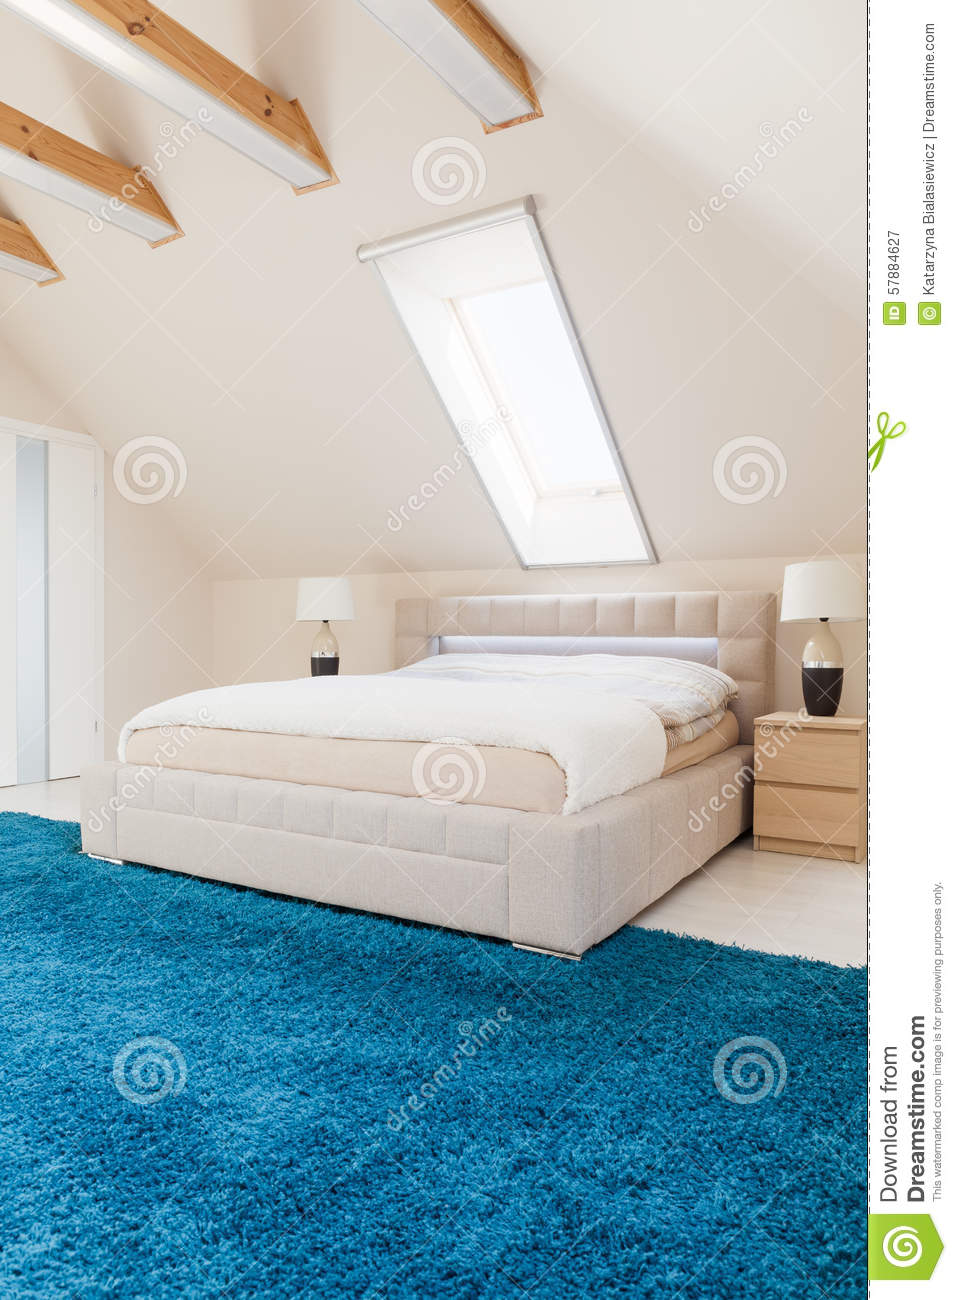 bedroom with blue carpet stock image image of decor